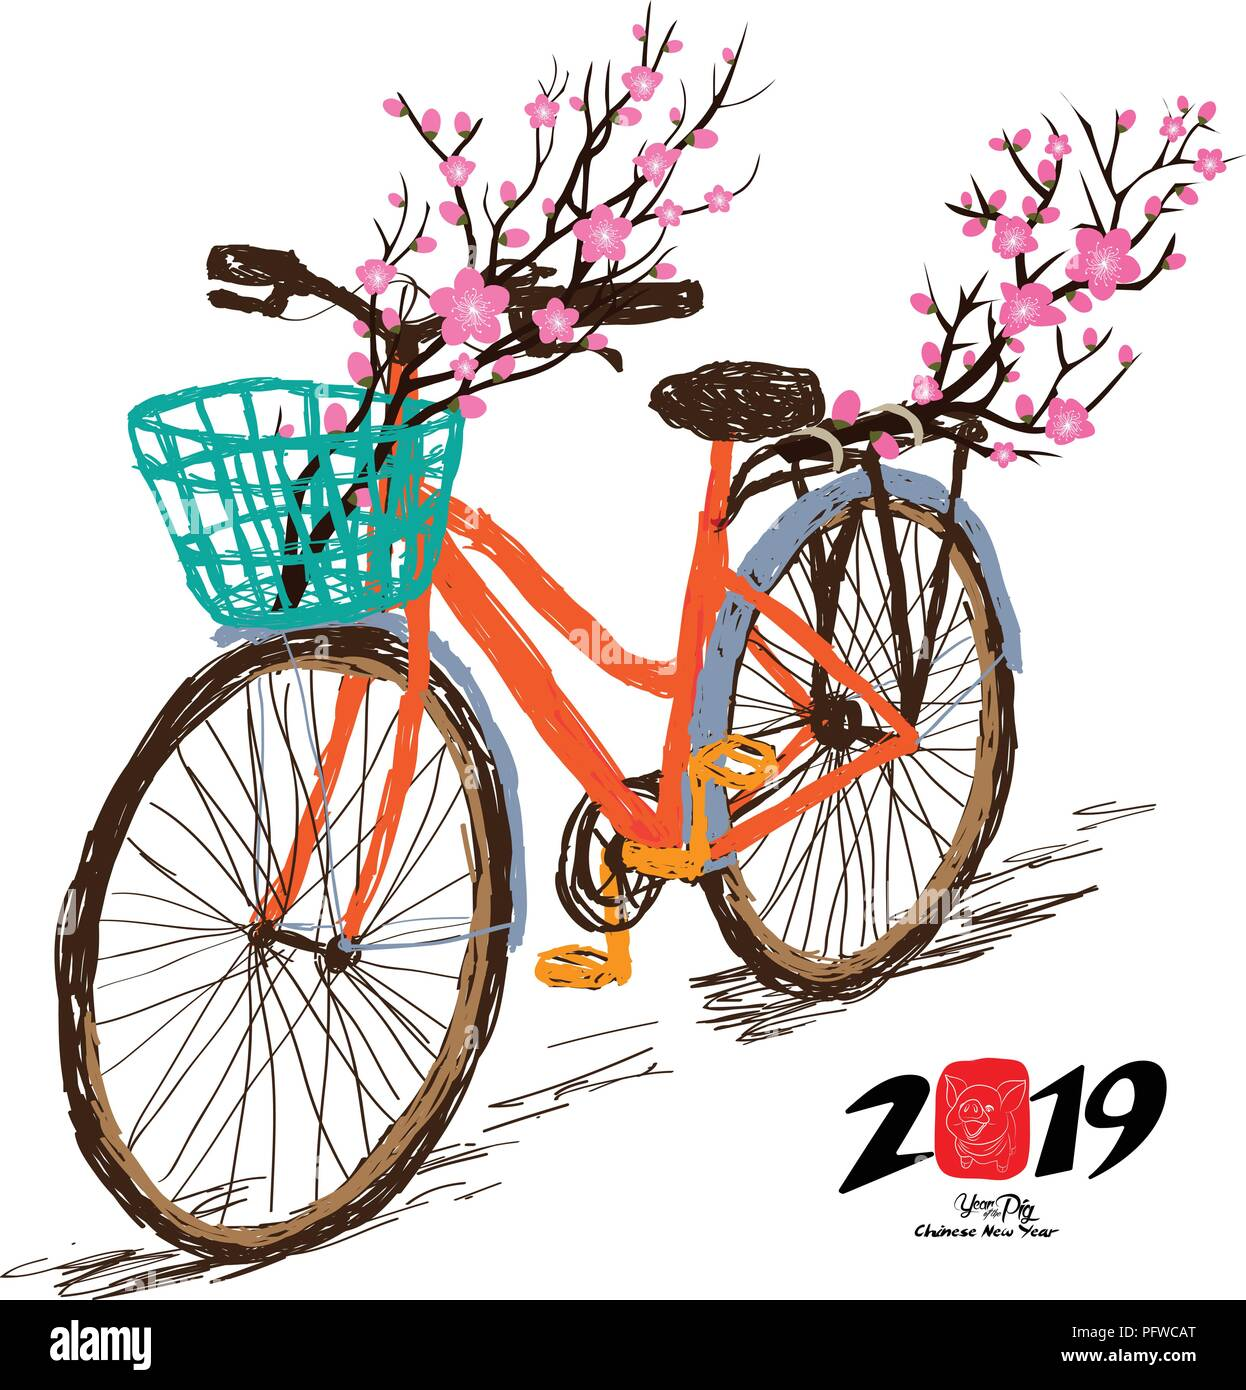 Chinese new year. Hand drawn tintage bicycle with sakura blossom in rear basket. Year of the pig - Stock Vector